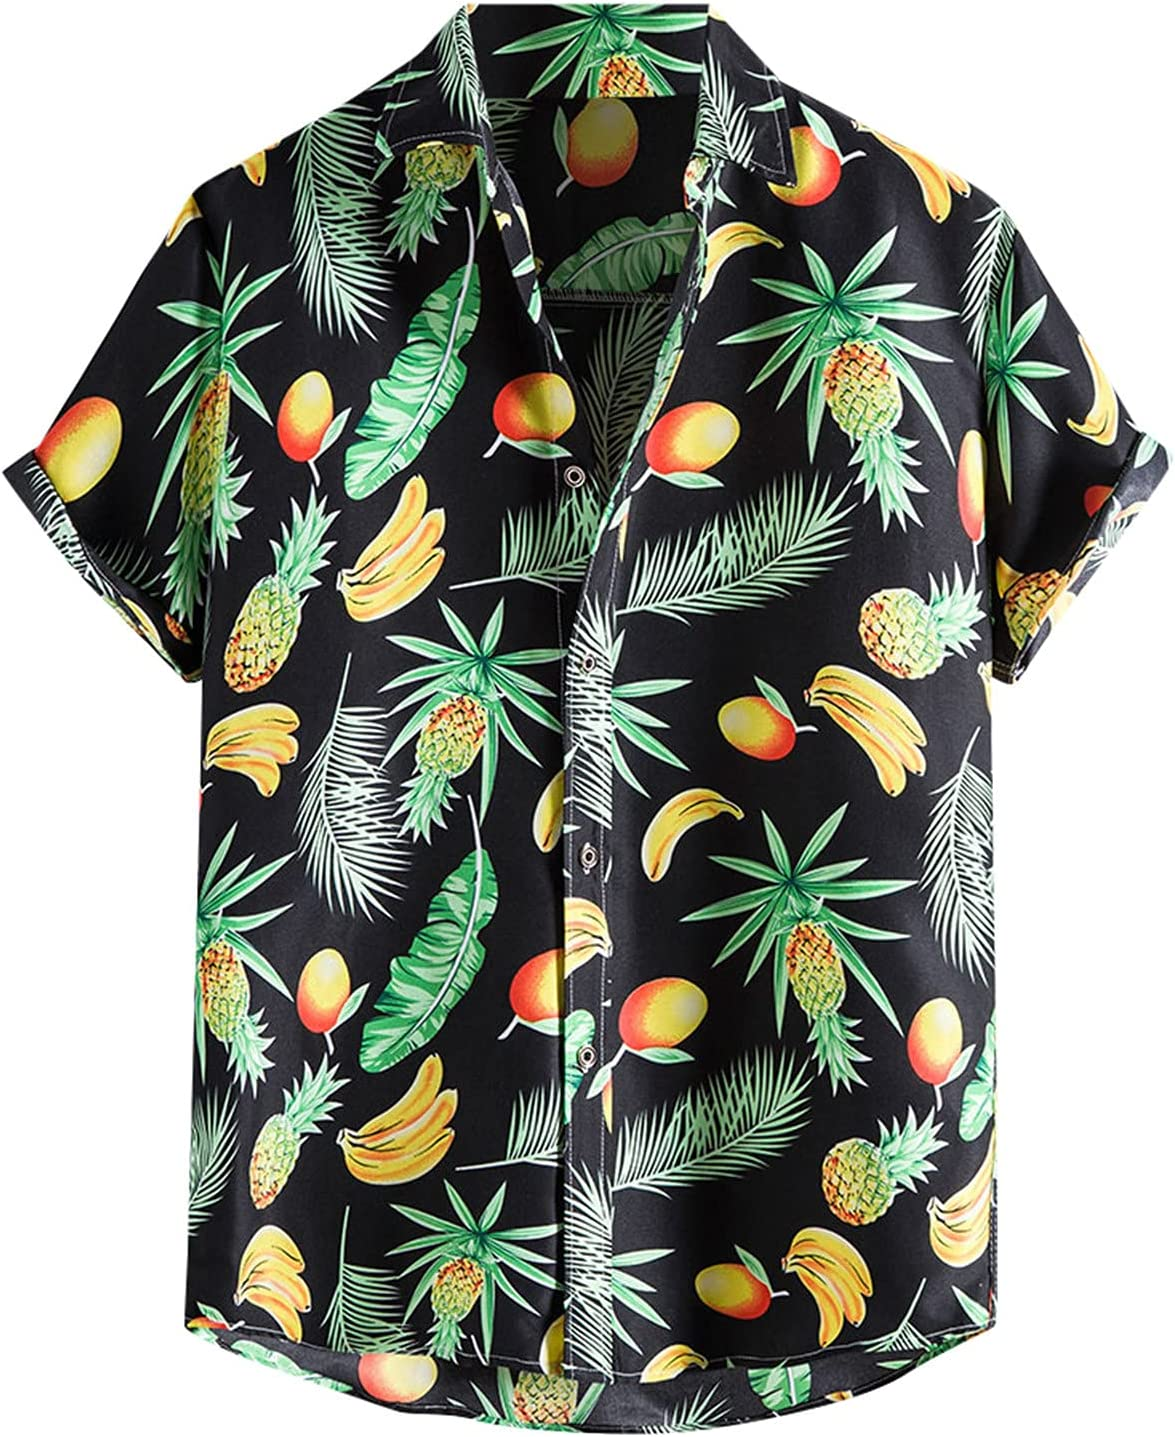 One76 Fashion Men's Summer Casual Printed Top Sleeve Short Popular products Tampa Mall Blous